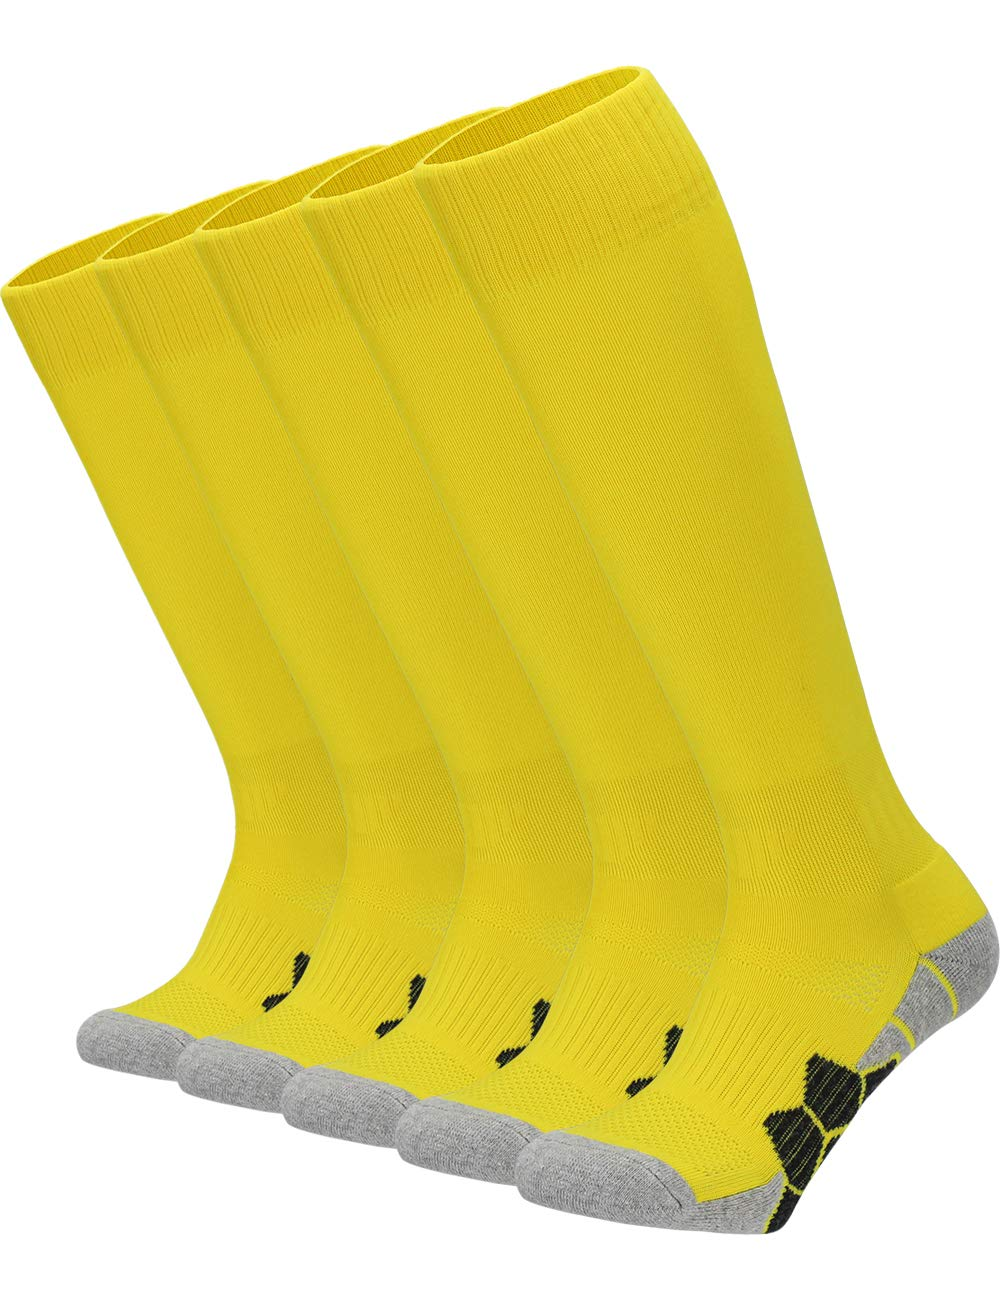 Youth Kids Adult Knee High Cotton Golf Socks Boys Girls Parent-Child Outdoor Active Long Towel Bottom Socks, 5-Pair Yellow, Size L (Kids 9C-13C / W 10-13 / M 8-12) by APTESOL